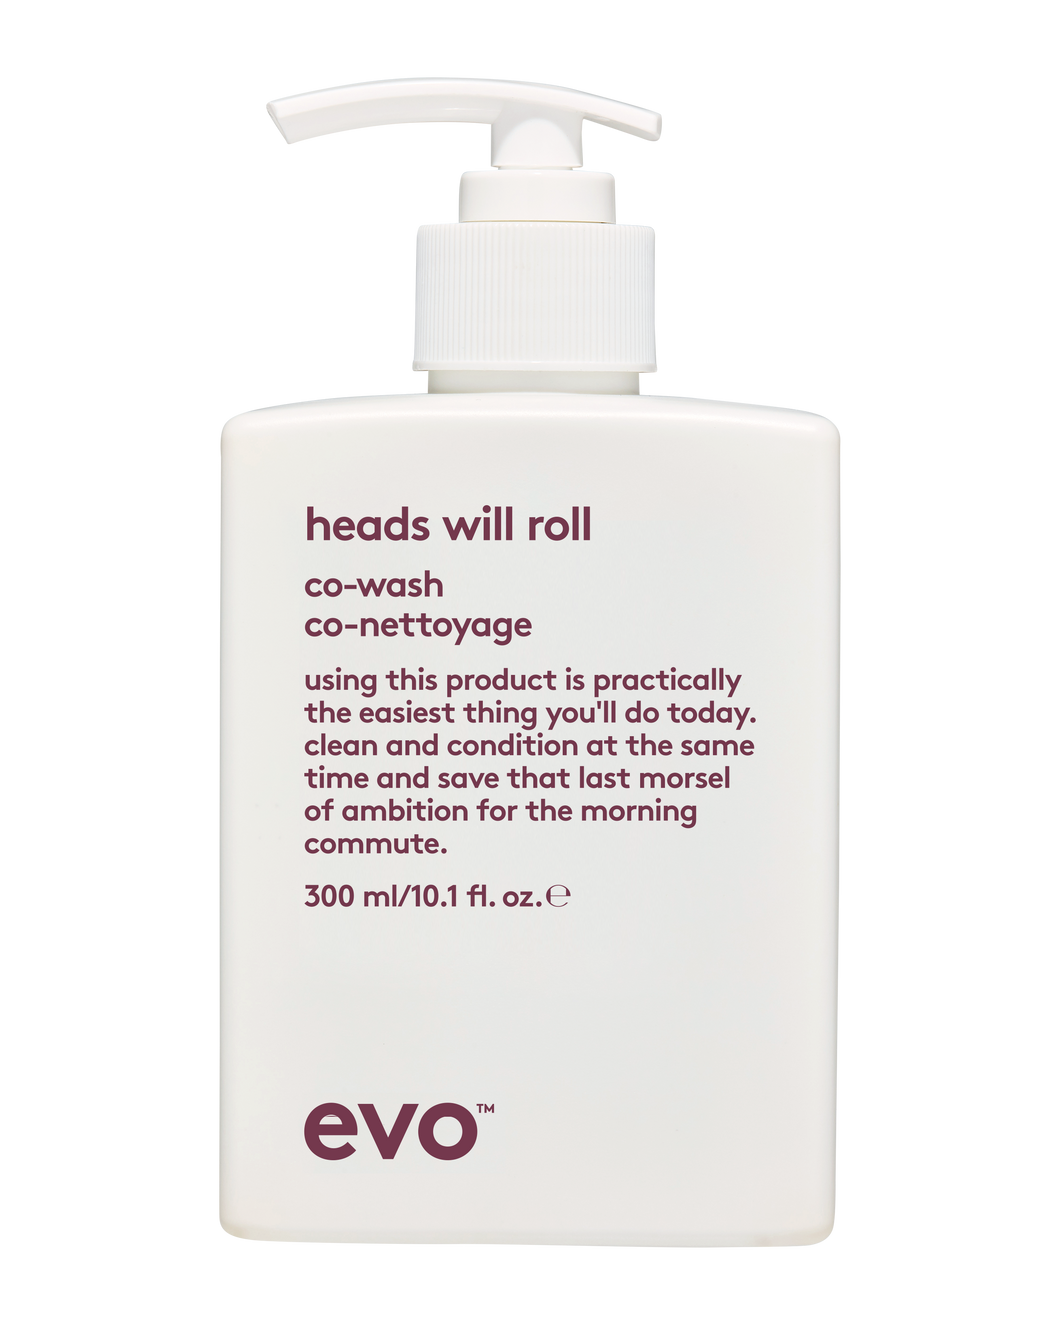 evo heads will roll co-wash 300ml